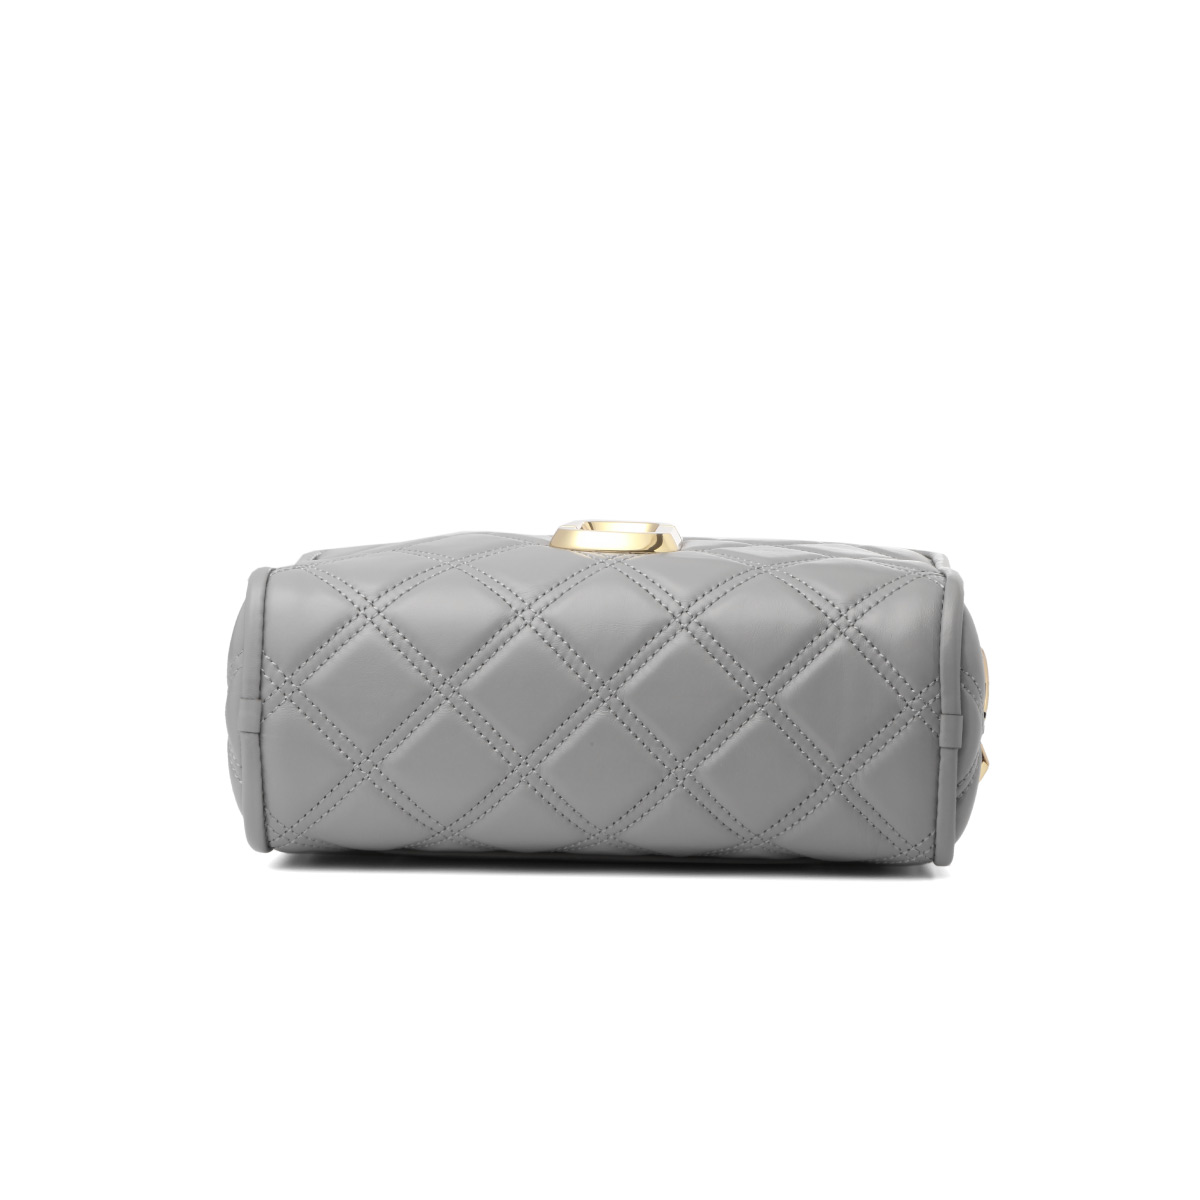 MARC JACOBS マーク ジェイコブス | ショルダーバッグ | THE QUILTED SOFTSHOT 21 ザ キルテッド ソフトショット 21